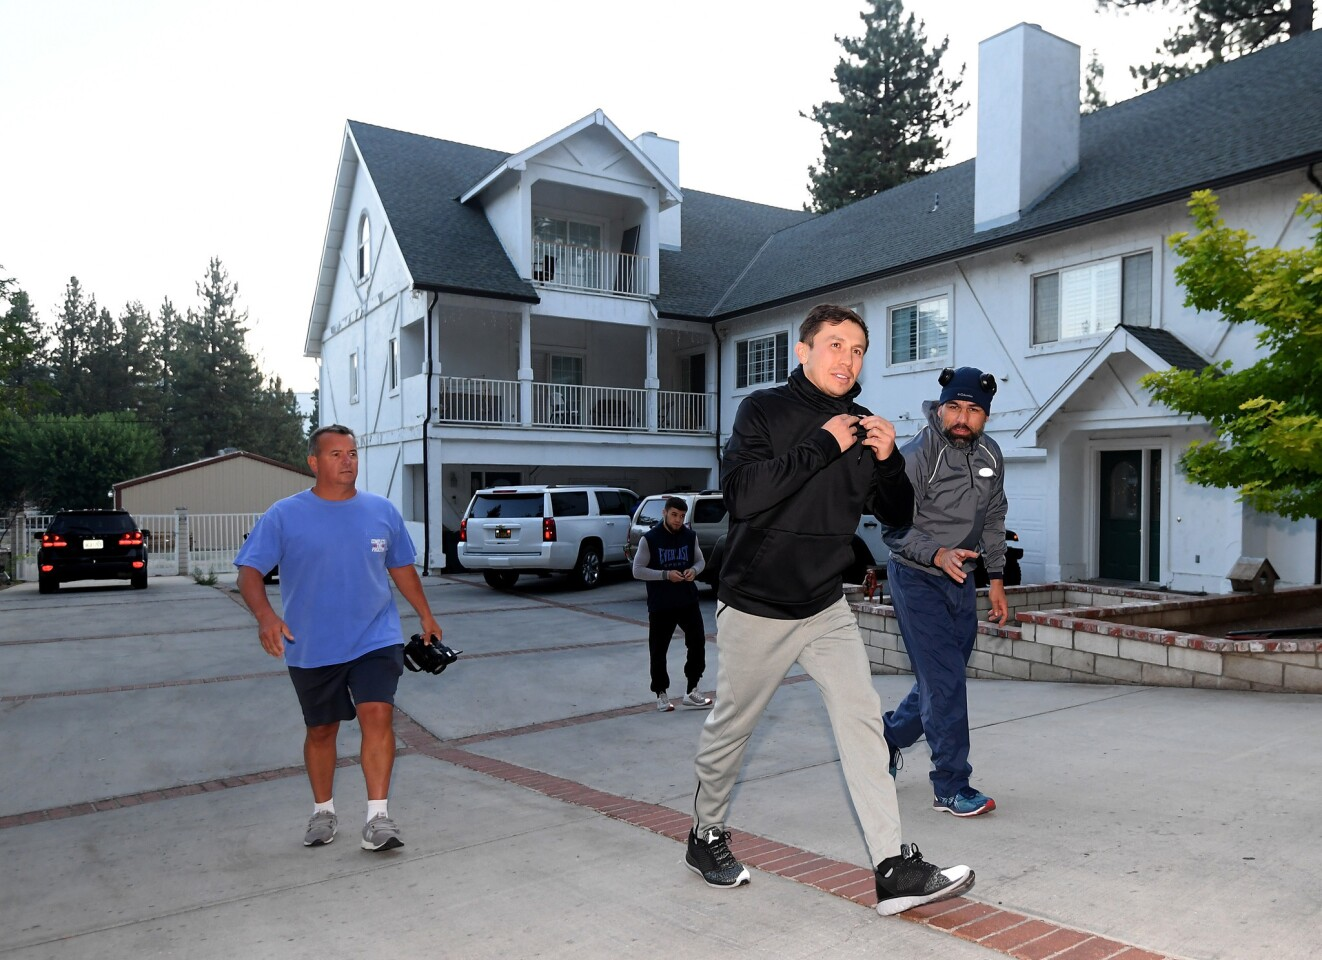 BIG BEAR LAKE, CA - AUGUST 09: Gennady Golovkin prepares for a morning run at The Summitt on August 9, 2018 in Big Bear Lake, California. (Photo by Harry How/Getty Images) ** OUTS - ELSENT, FPG, CM - OUTS * NM, PH, VA if sourced by CT, LA or MoD **